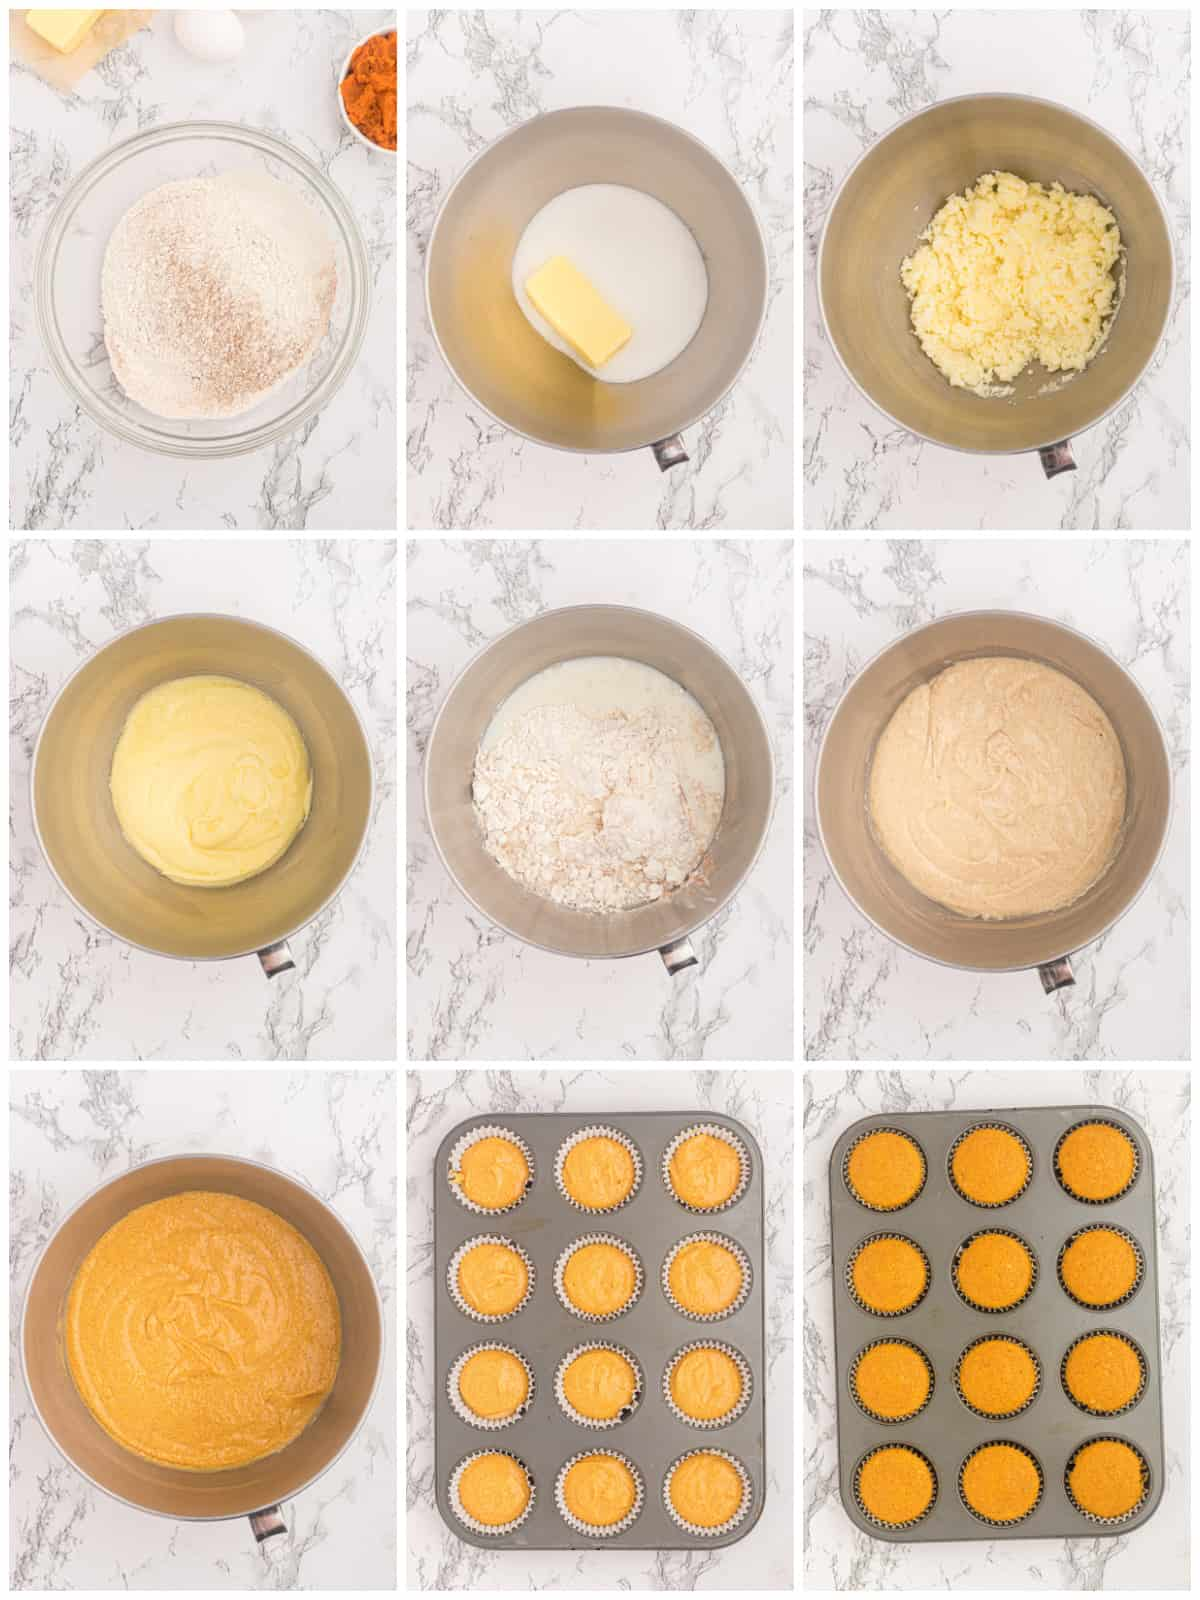 Step by step photos on how to make Pumpkin Cupcakes.